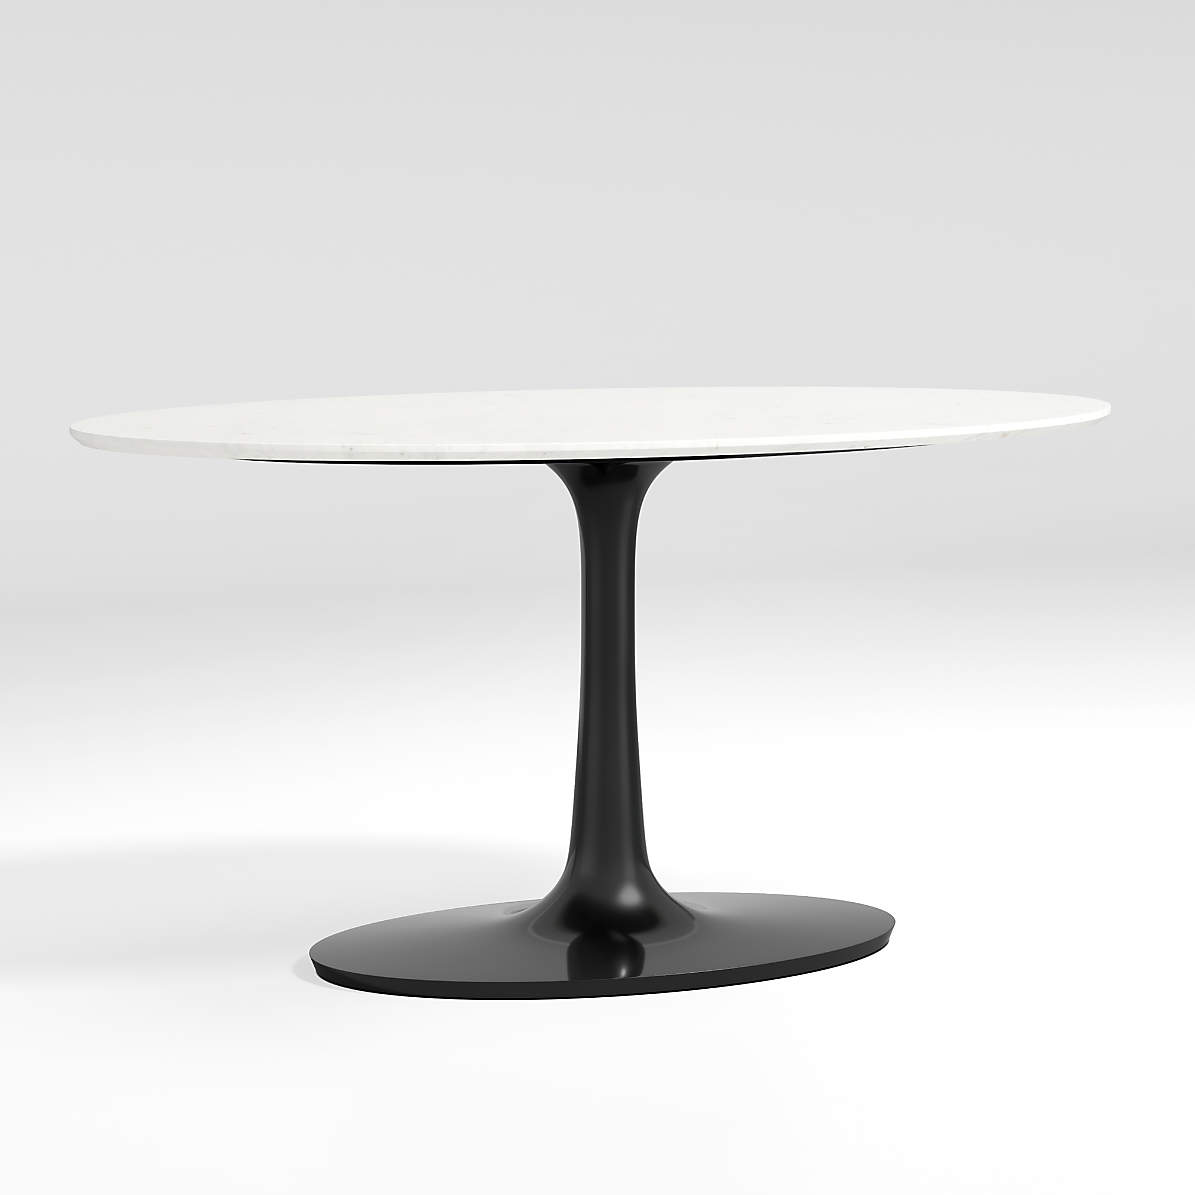 Nero Oval White Marble Top Table With Matte Black Base Reviews Crate And Barrel Canada